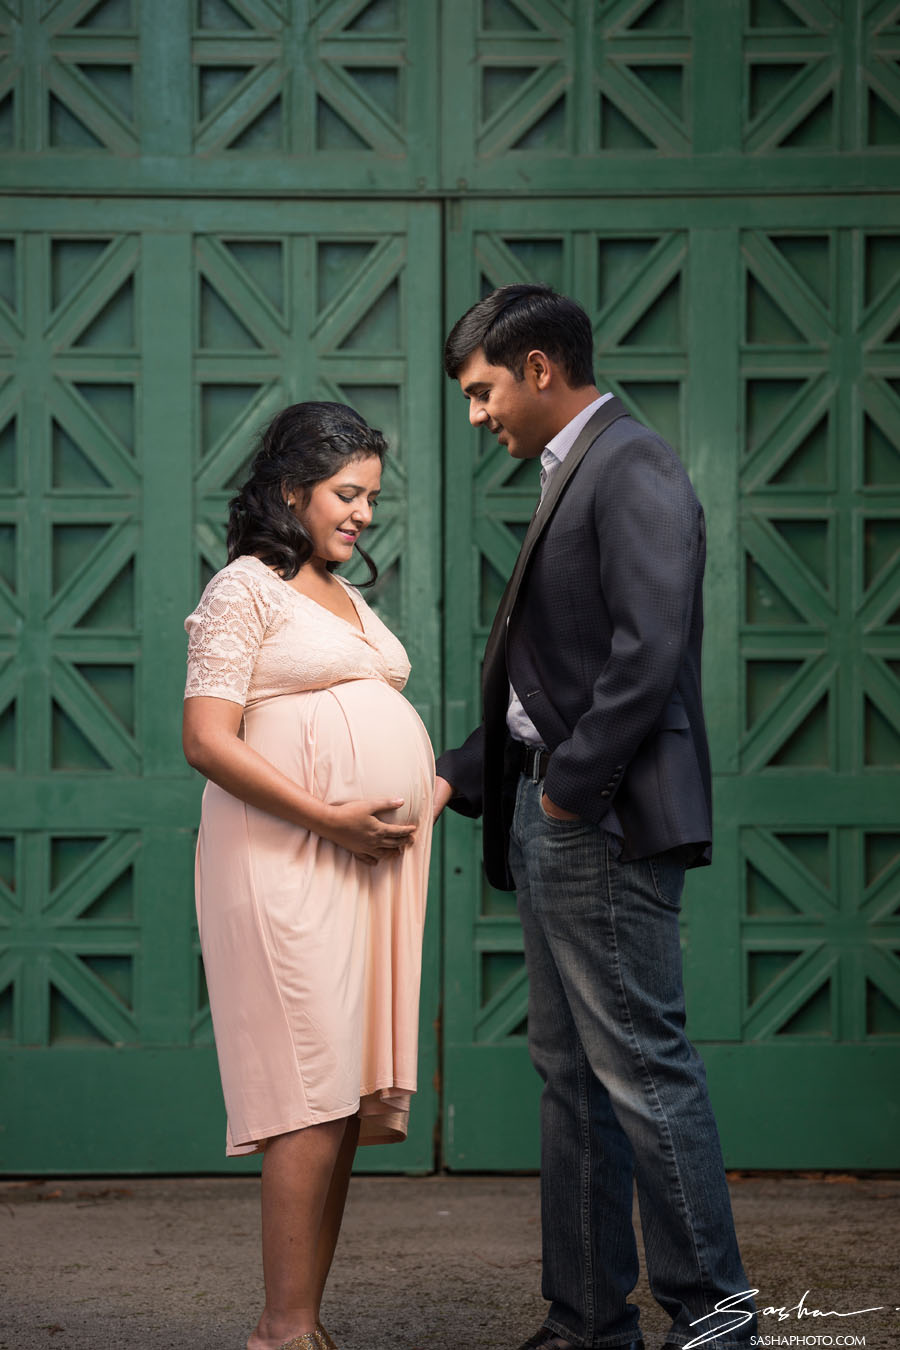 palace of fine arts maternity session